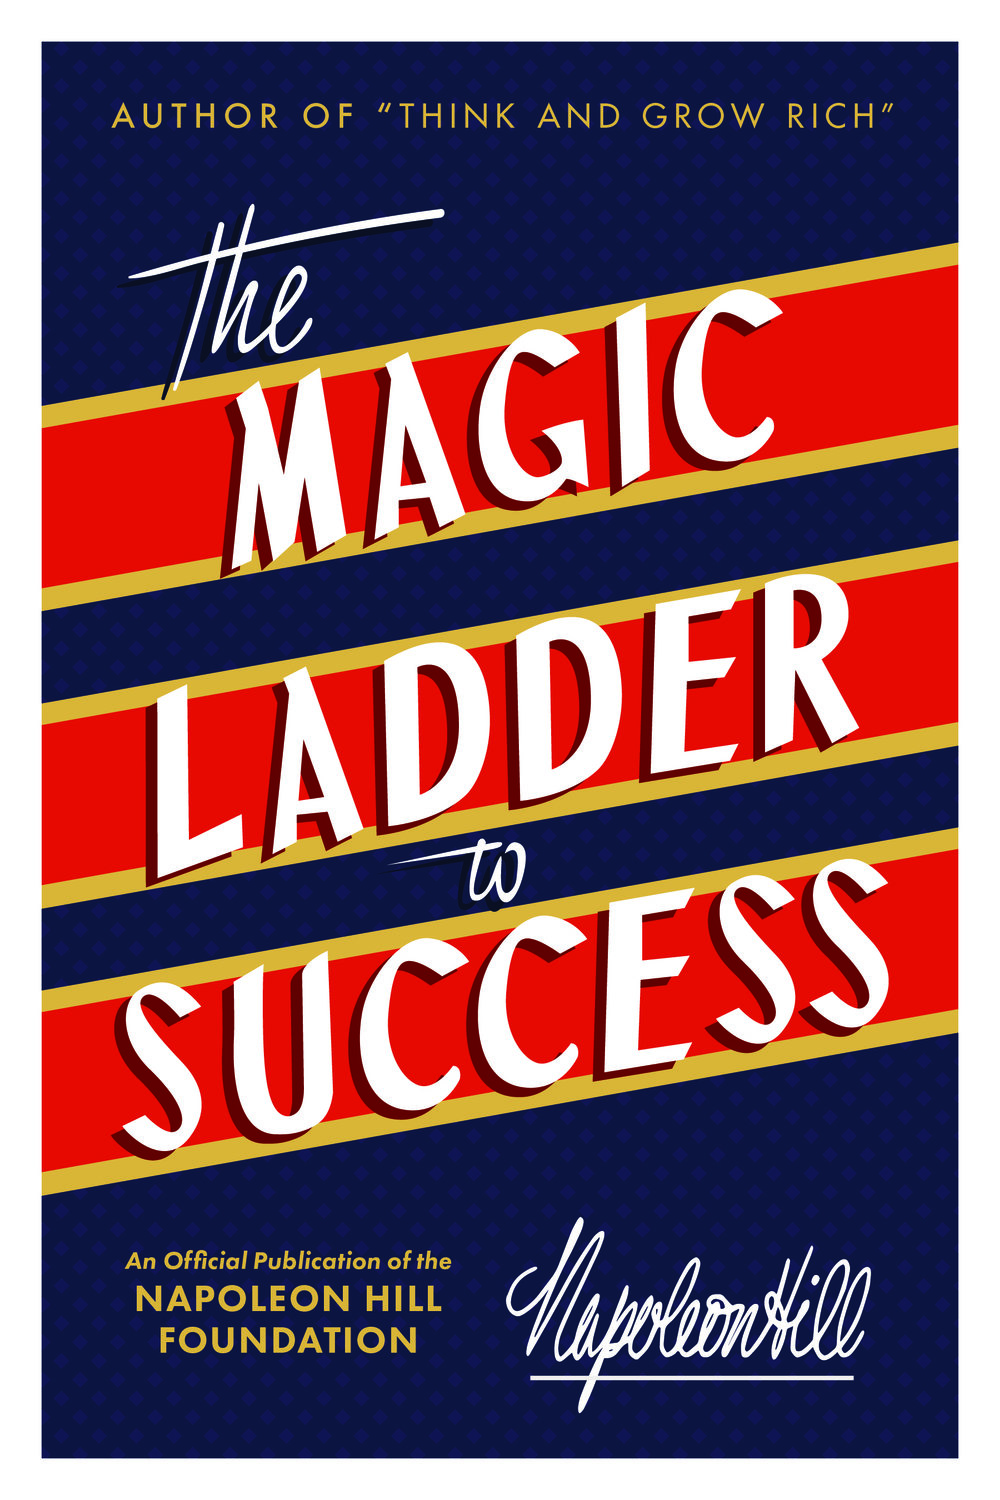 The_Magic_Ladder_to_Success.jpg